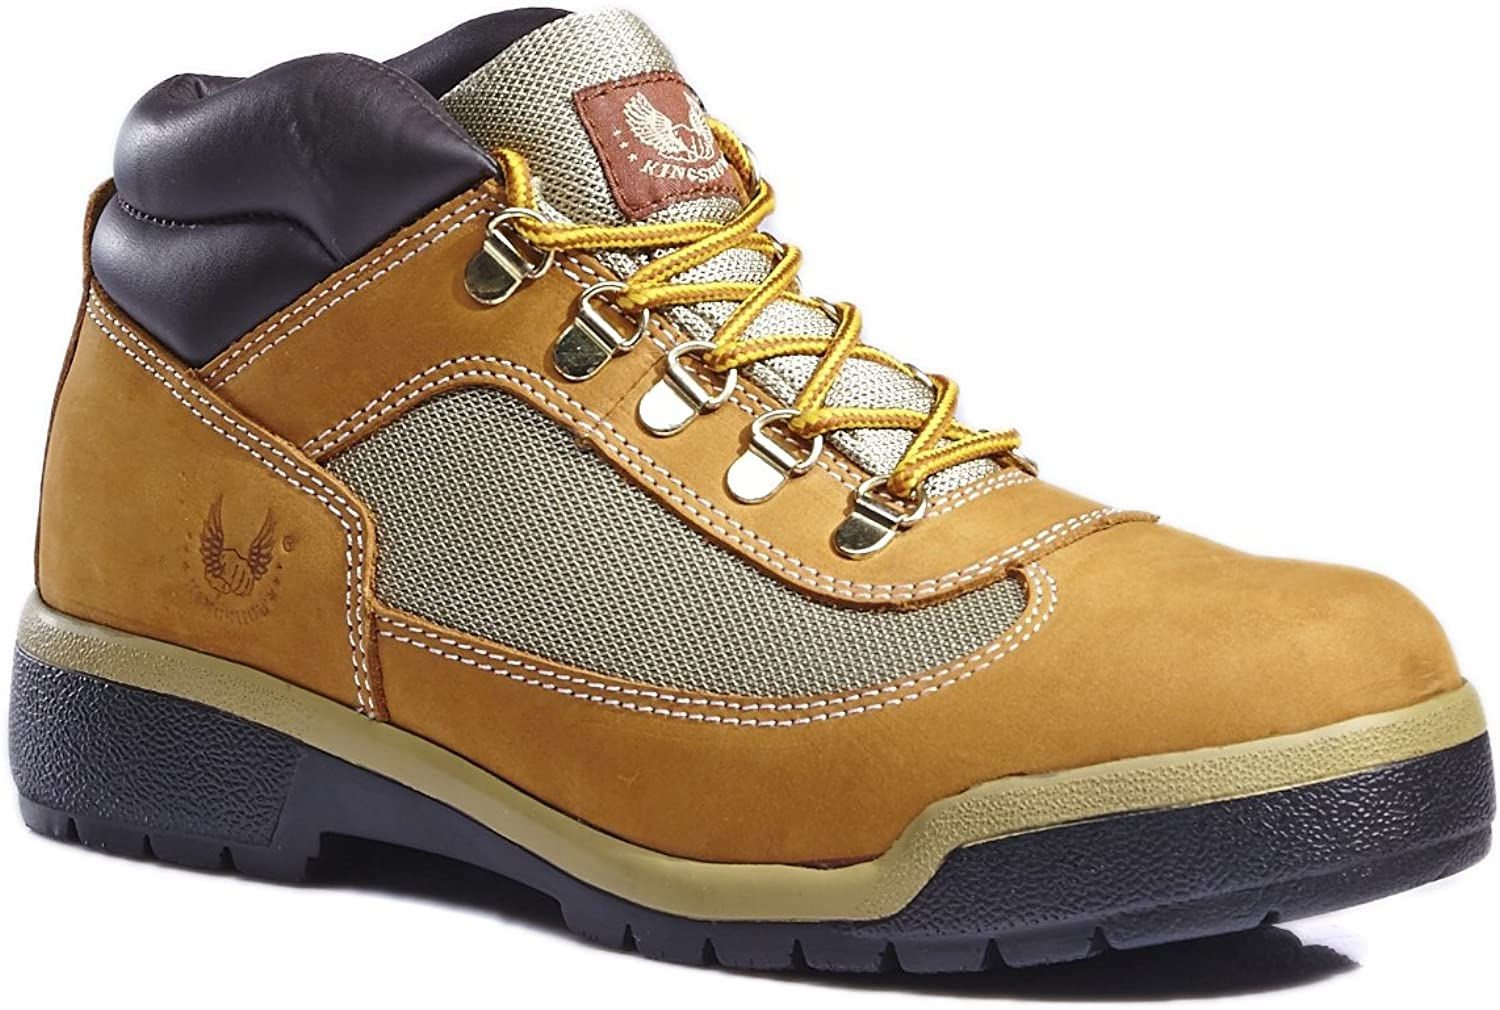 KINGSHOW Men's Classic Work Boots